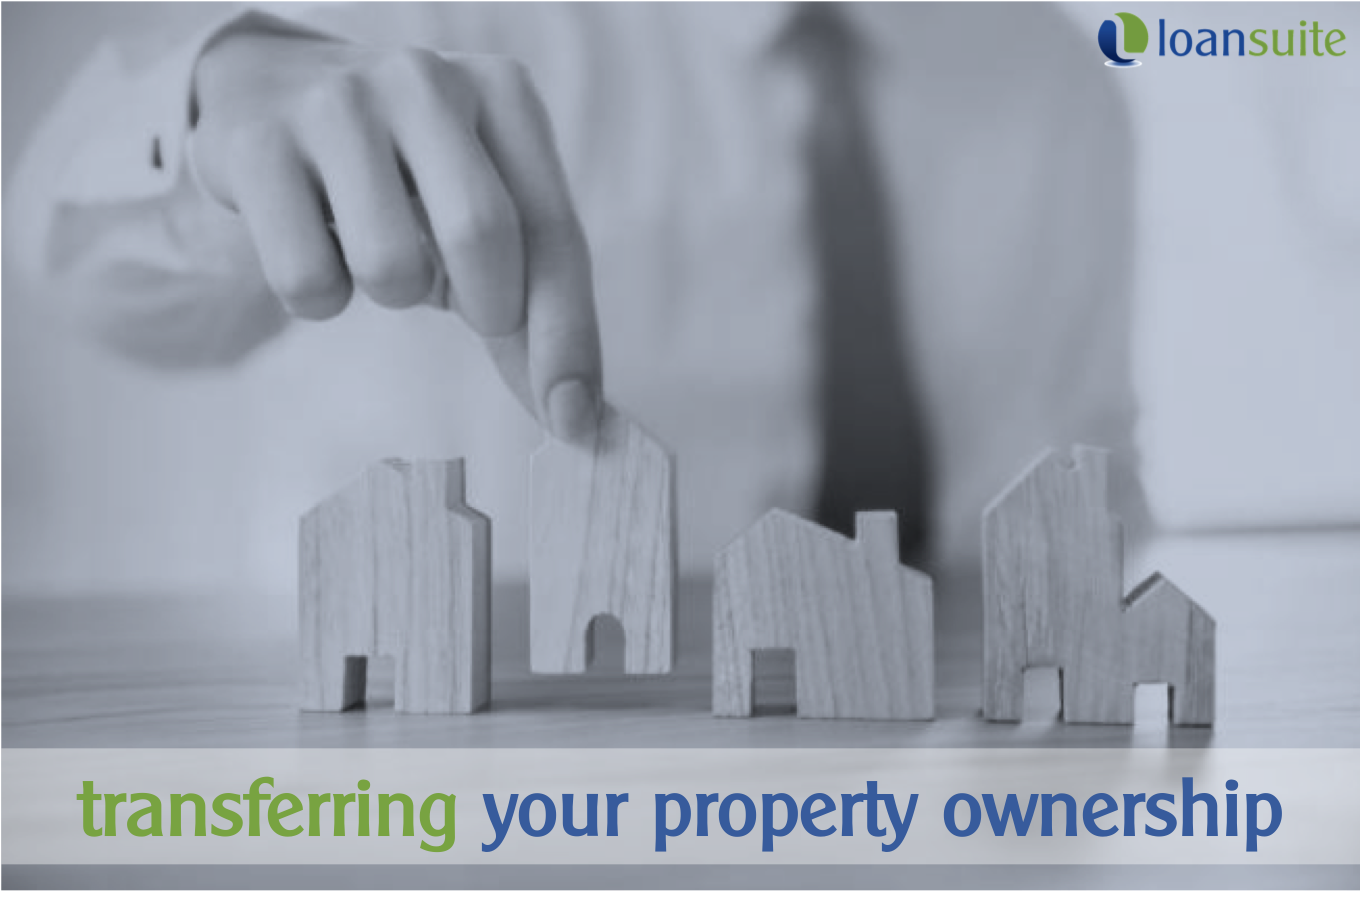 Transferring Ownership of Your Property - Loansuite - Mortgage Brokers for Australian Expats & Residents